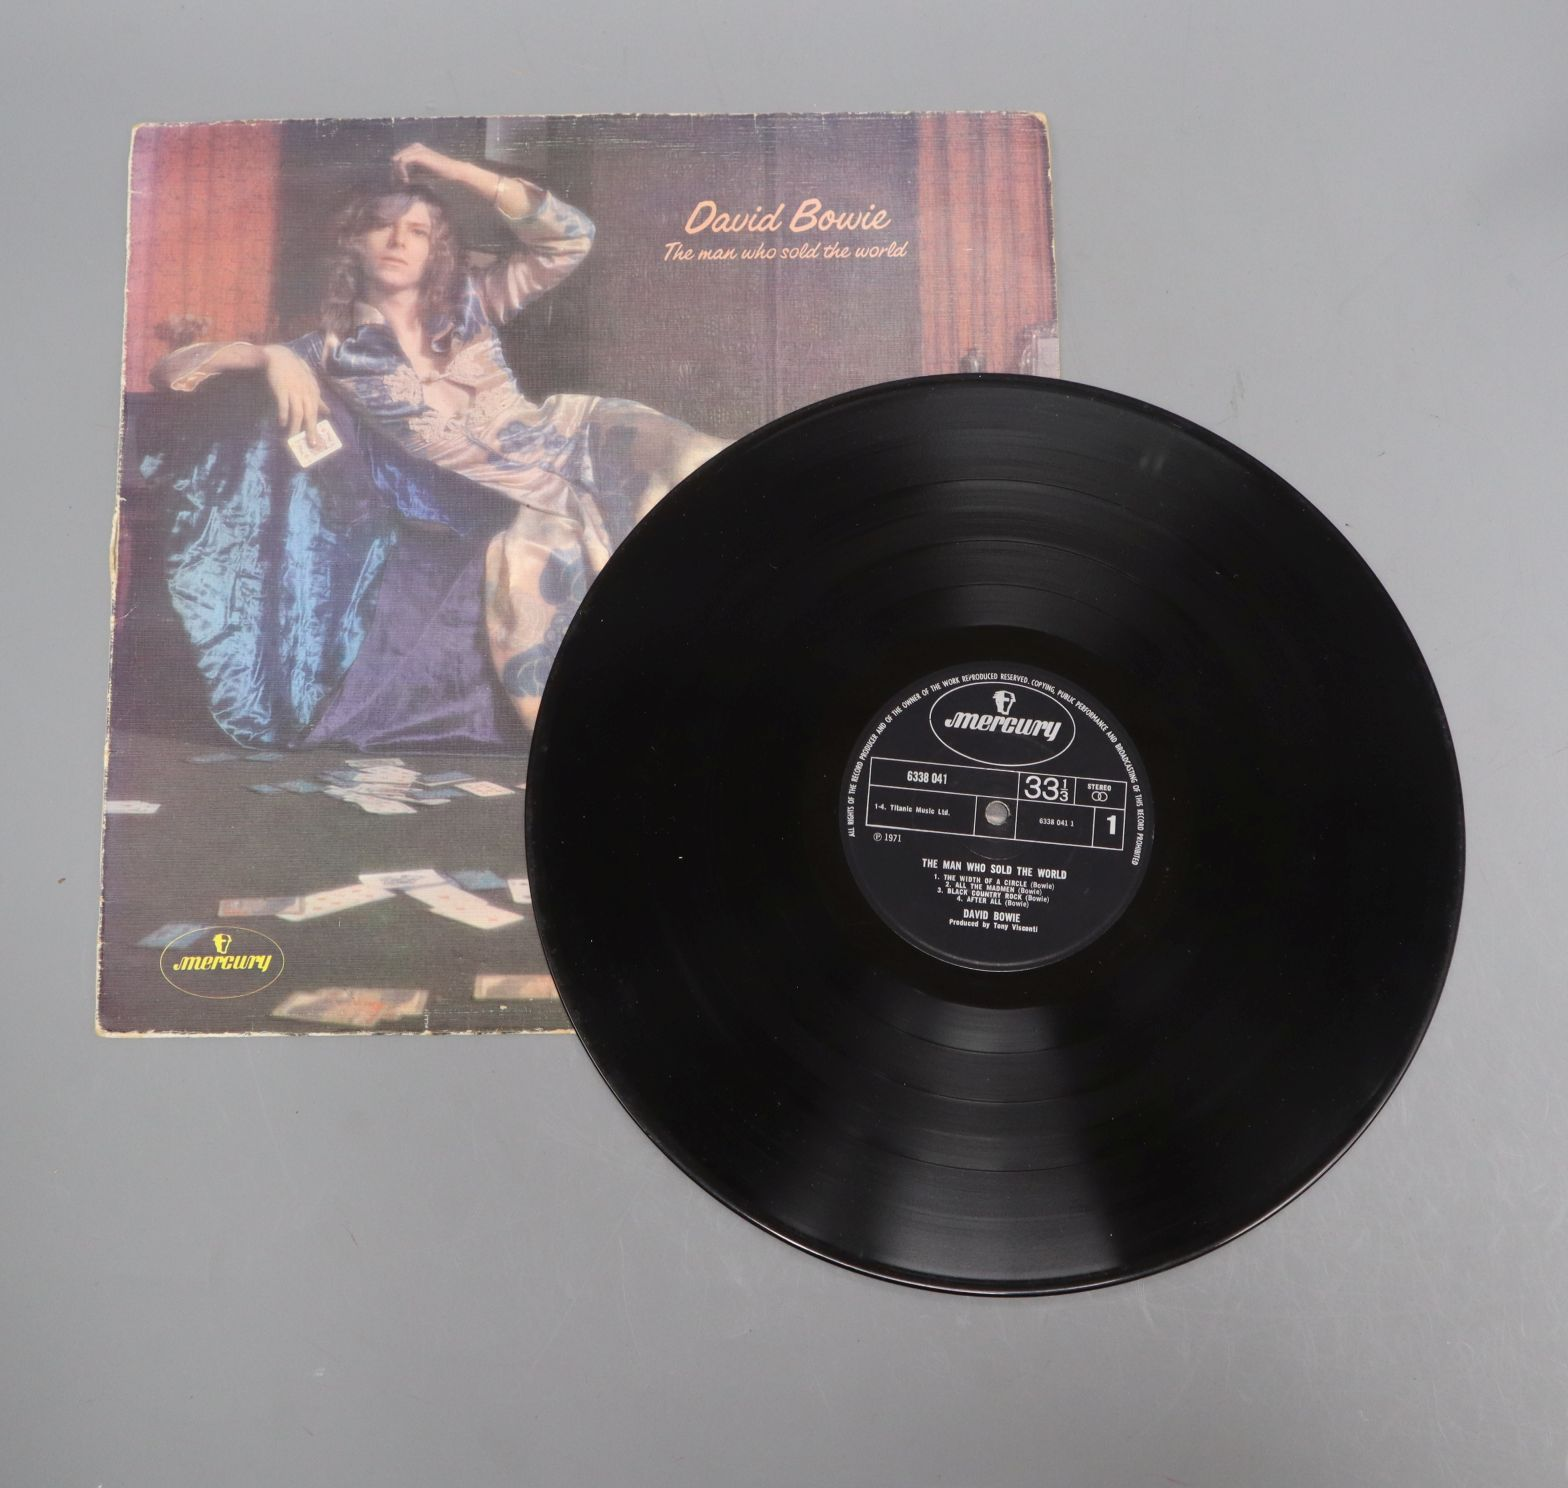 Lot 107 - David Bowie - Man who sold the World in Withdrawn Sleeve Exceptionally rare Bowie LP in infamous